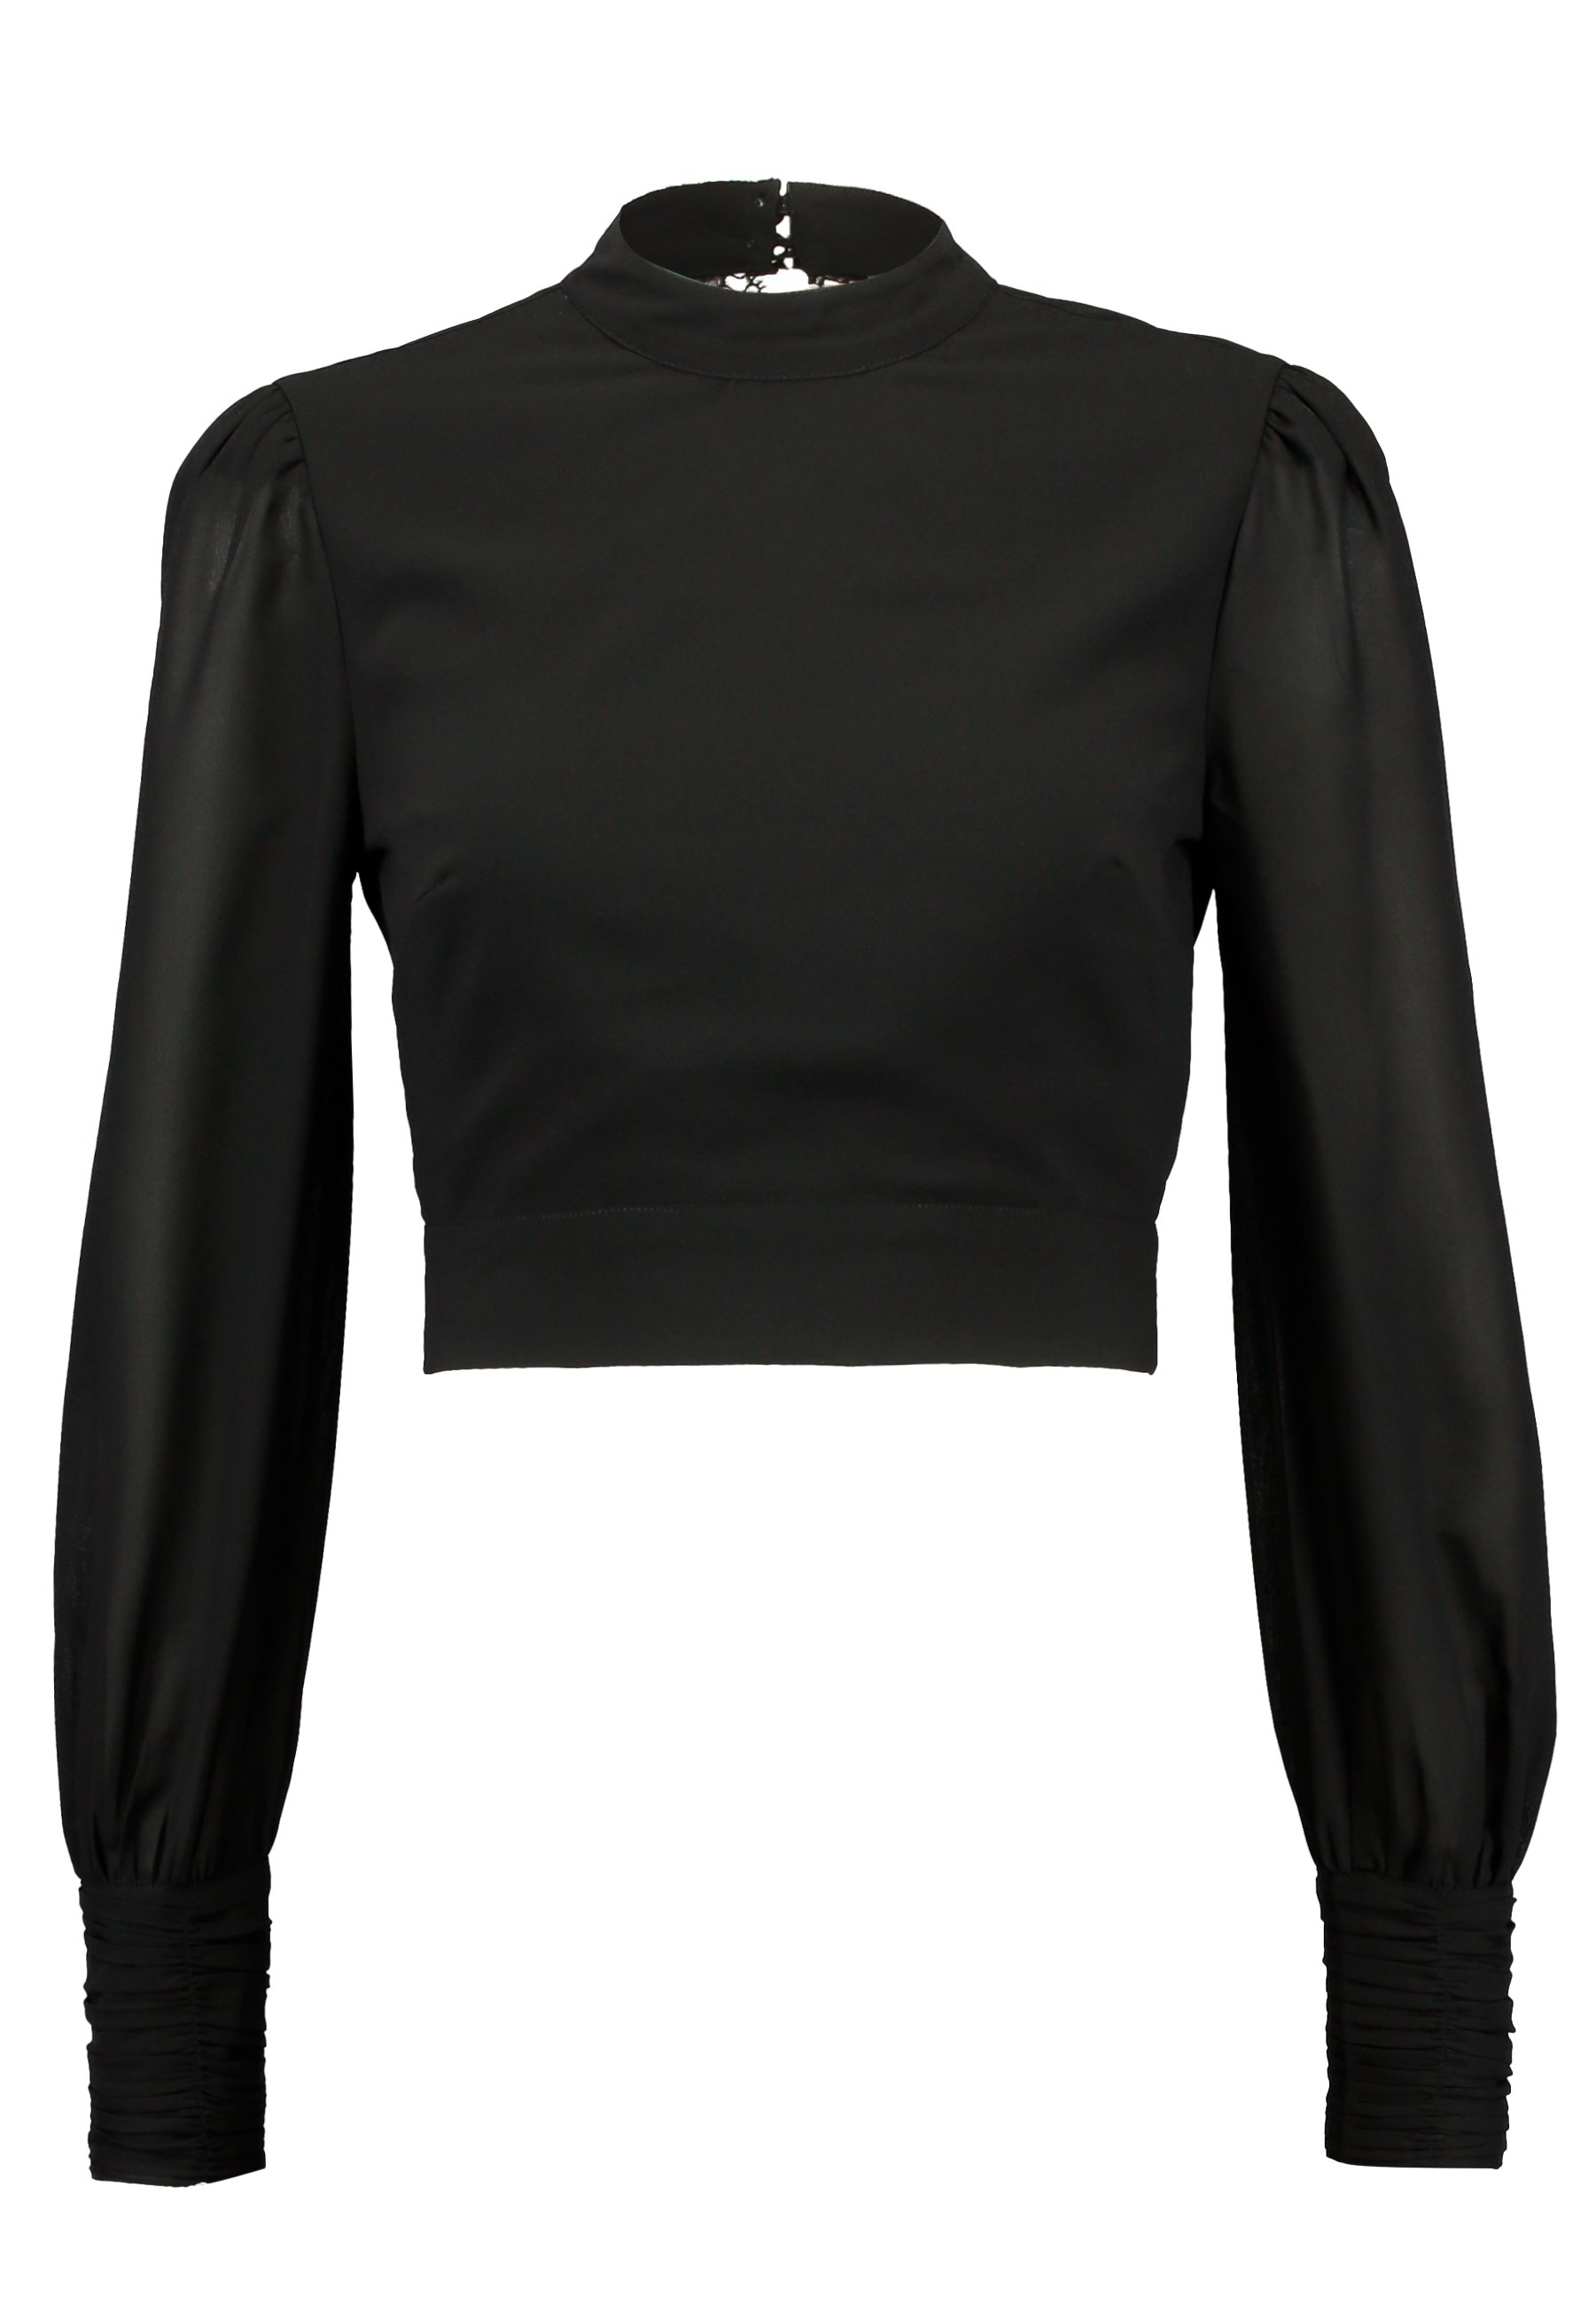 Hope & Ivy Petite High Neck Blouse - Black